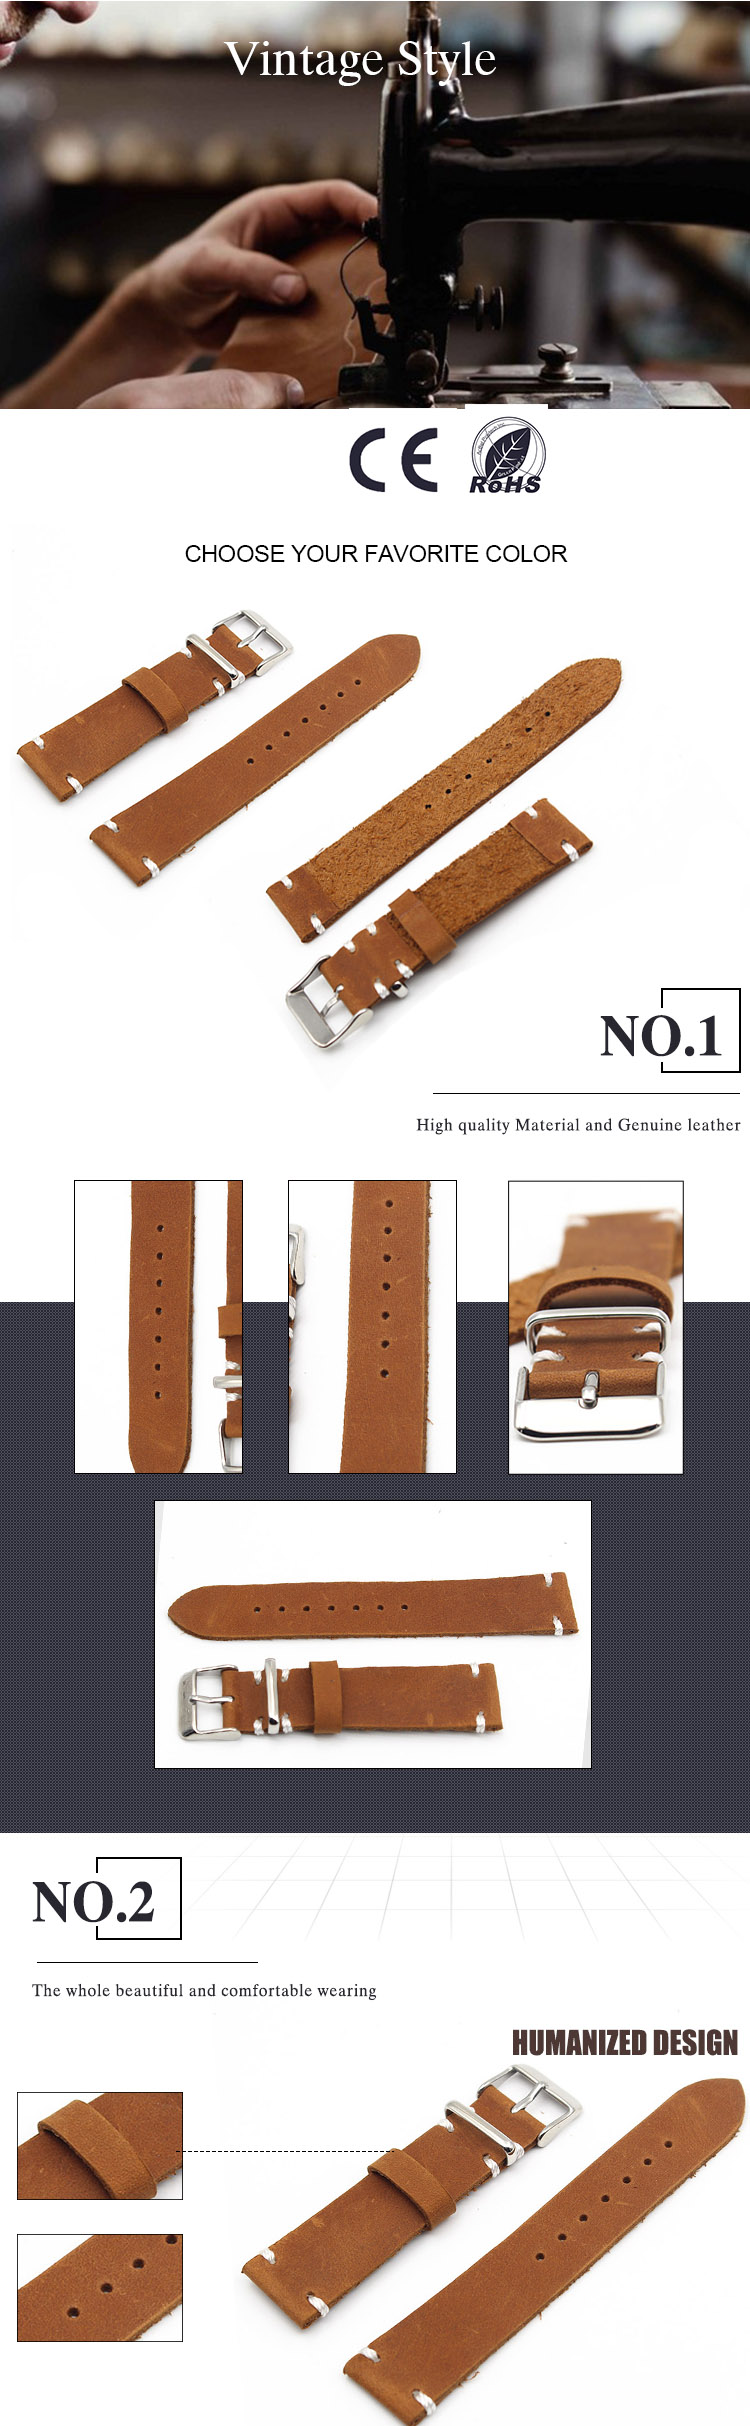 Vintage Calf Leather Watch straps